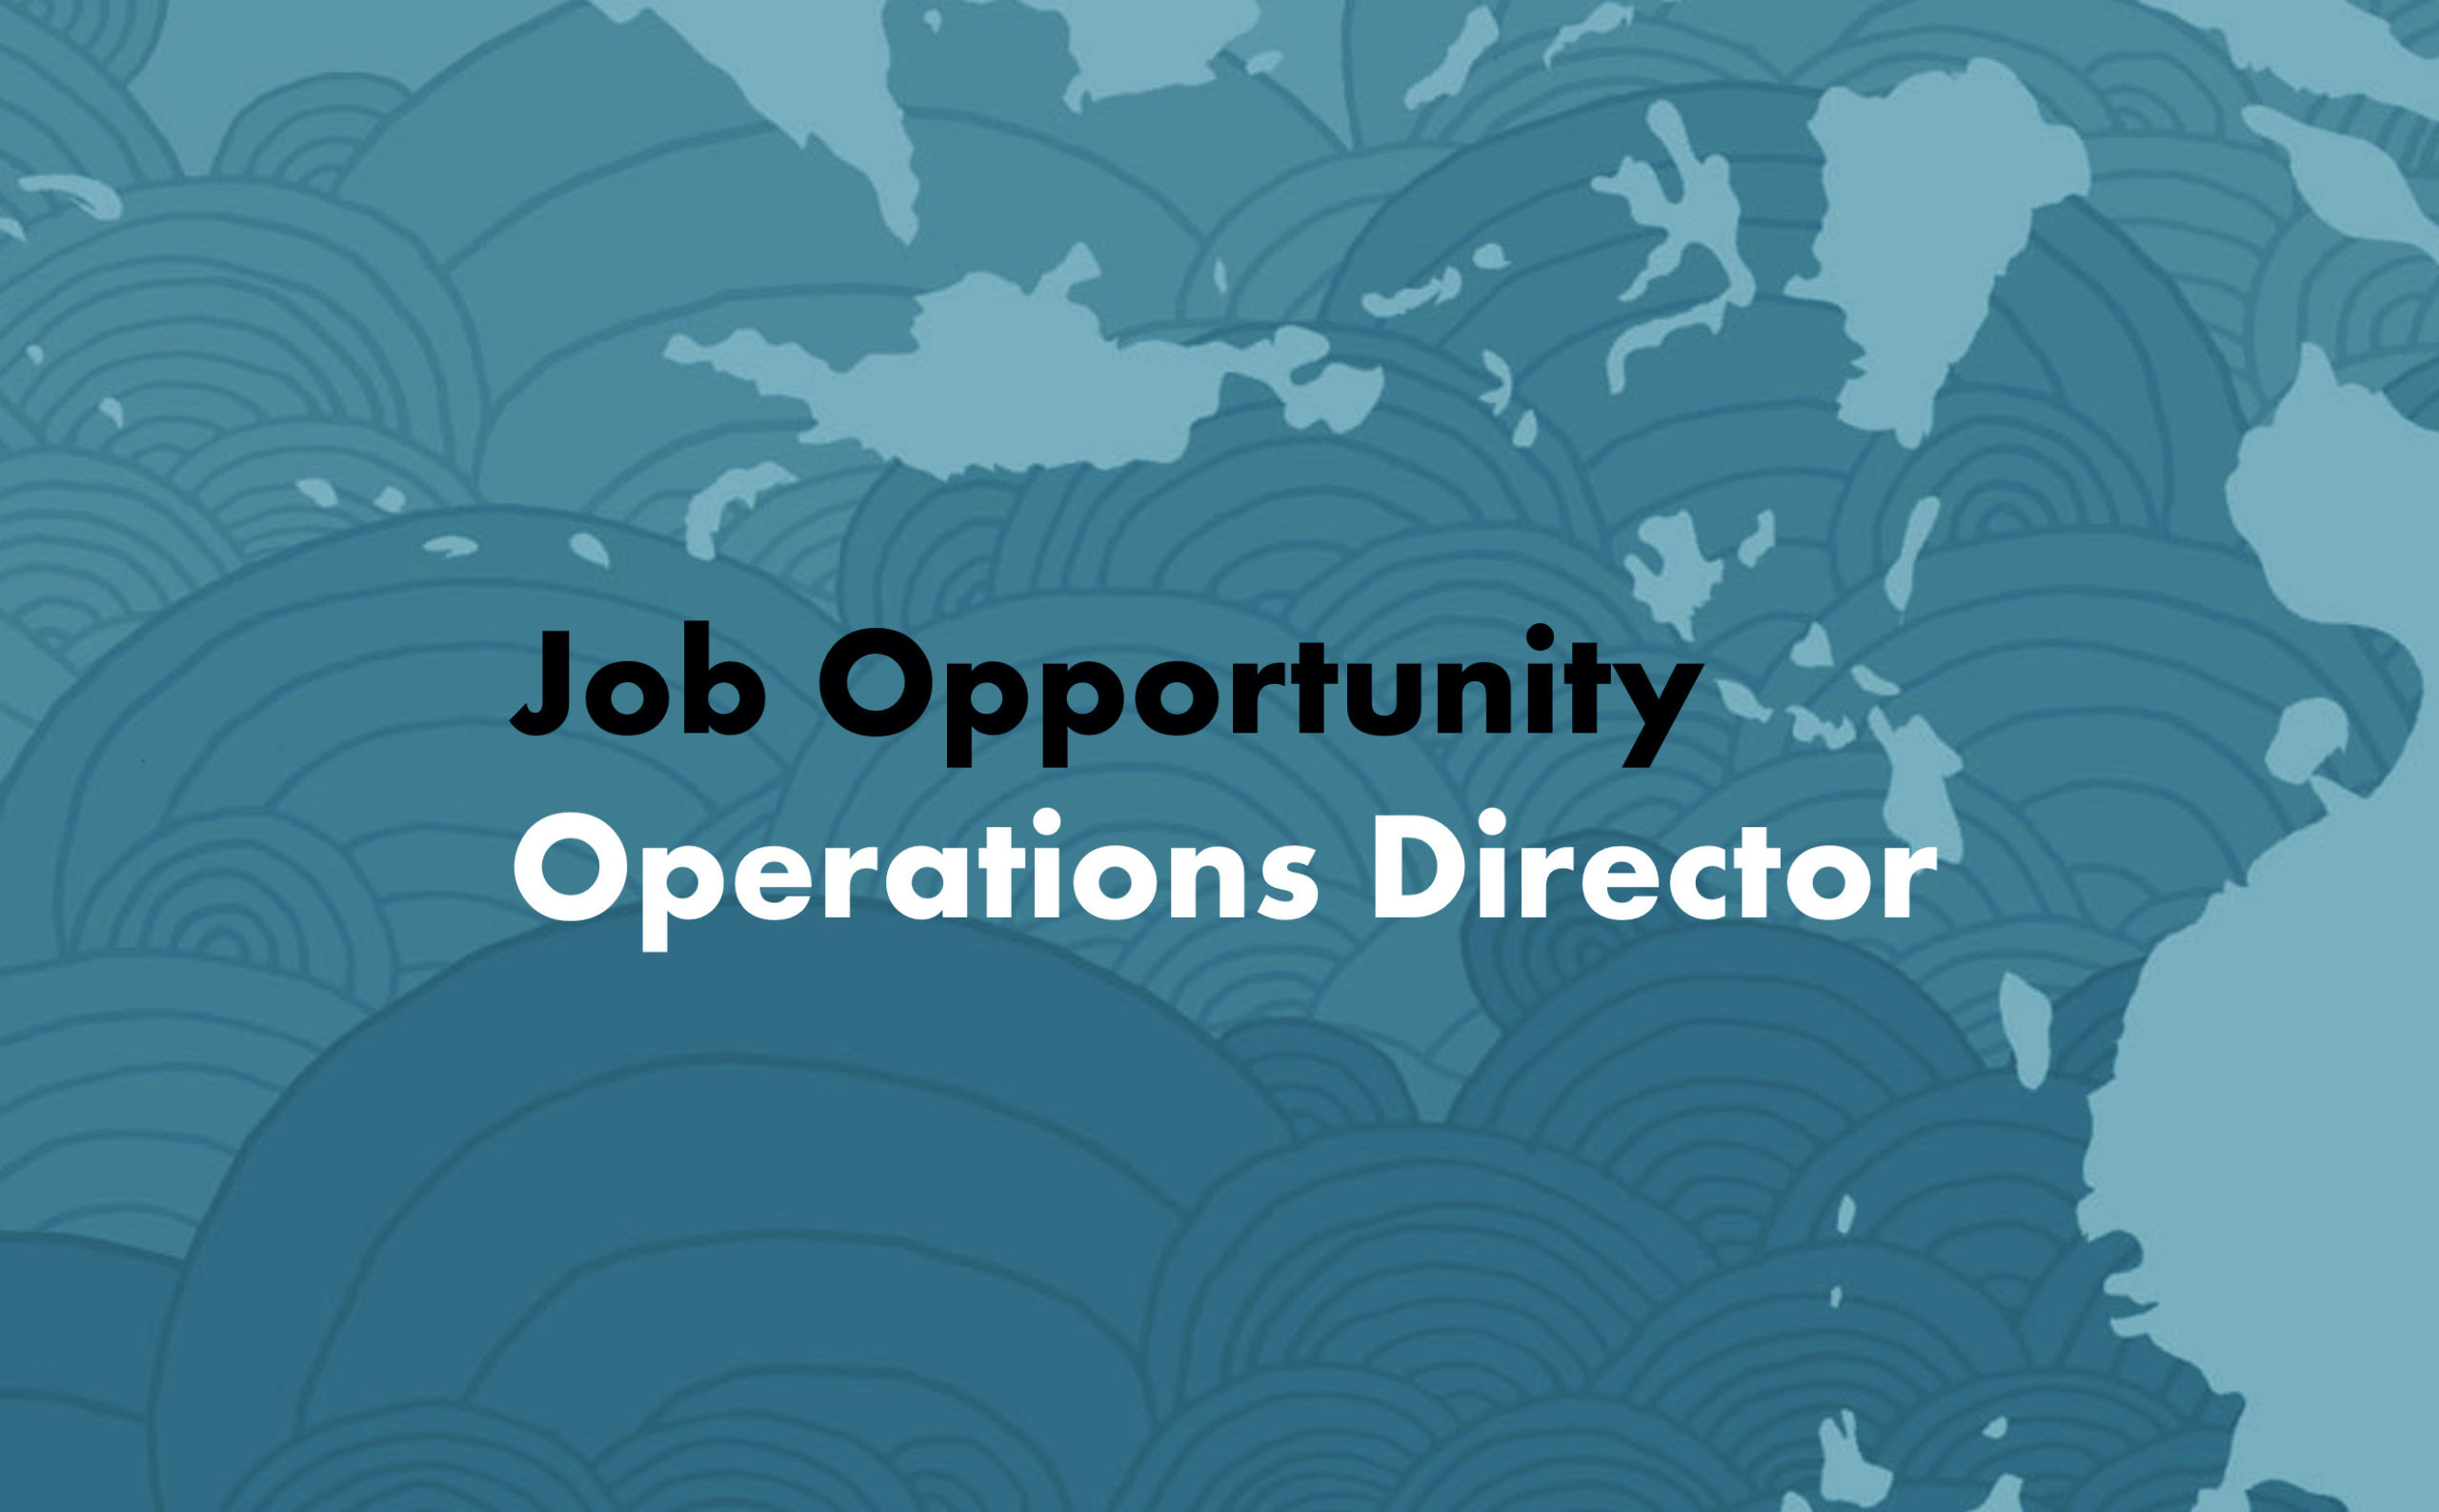 Job Opportunity: Operations Director